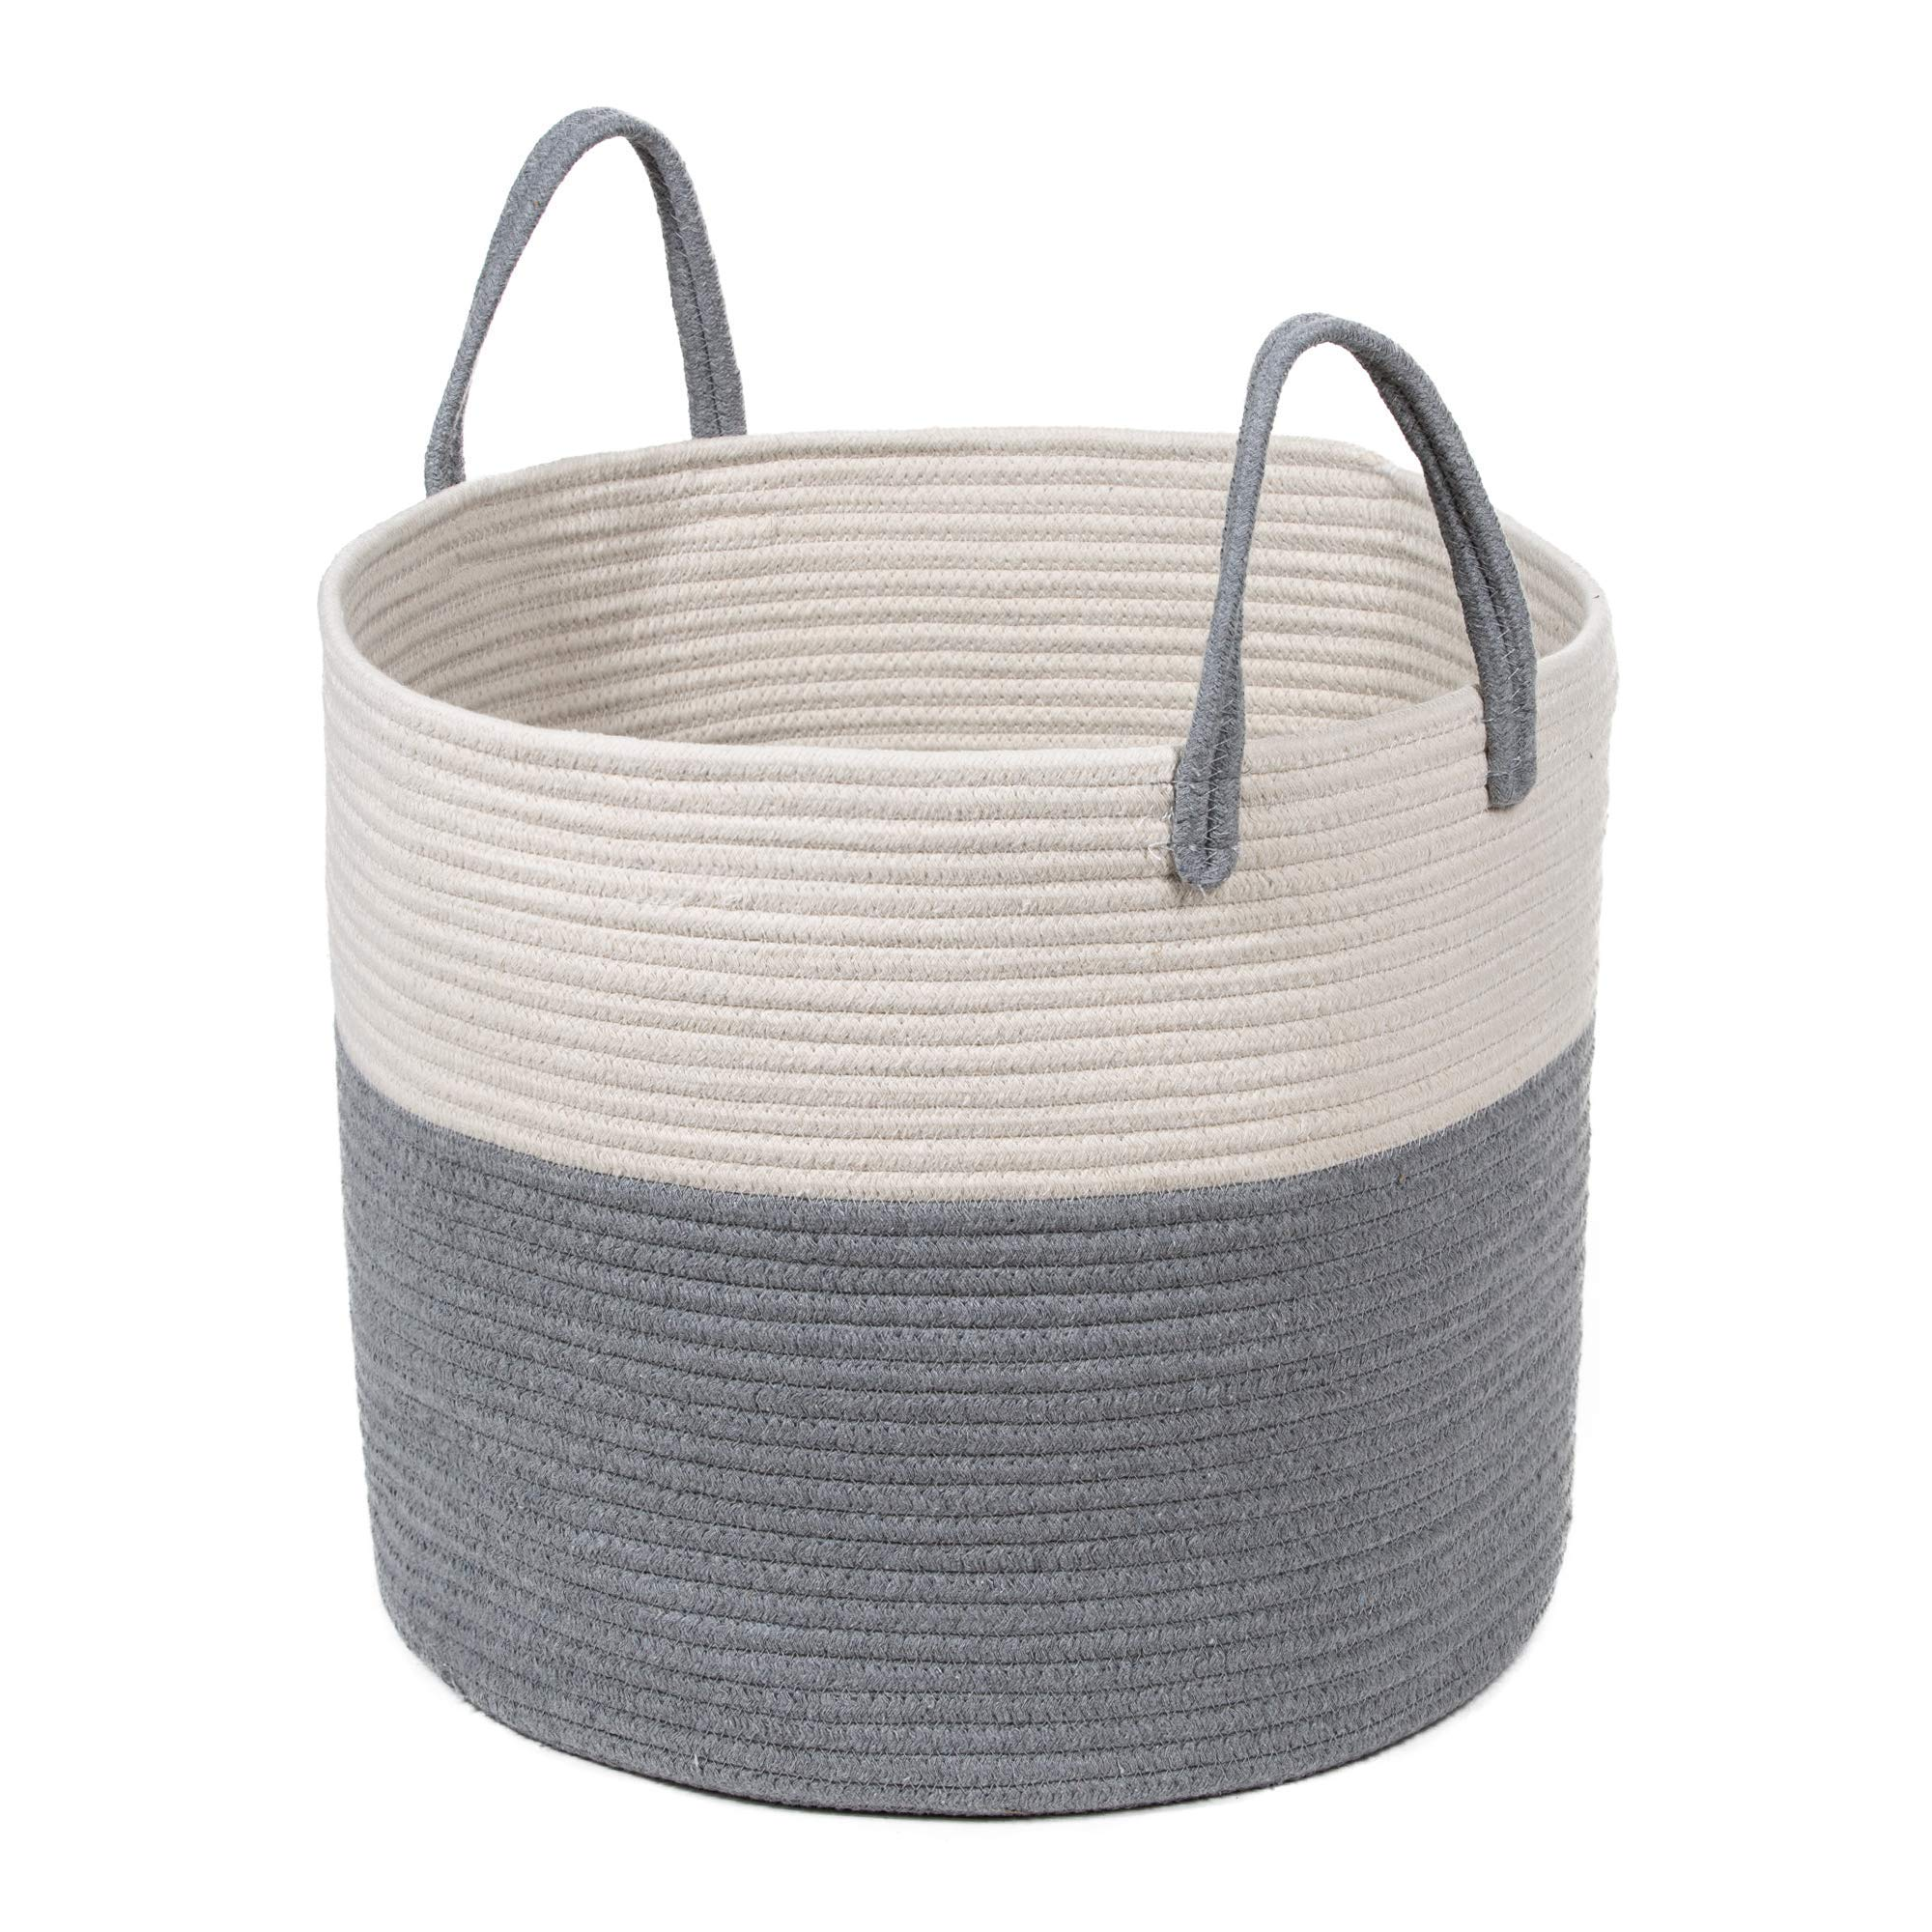 Extra Large Cotton Rope Basket 17 x 14.7 with Handles, for Baby Laundry Basket Woven Blanket Basket Nursery Bin